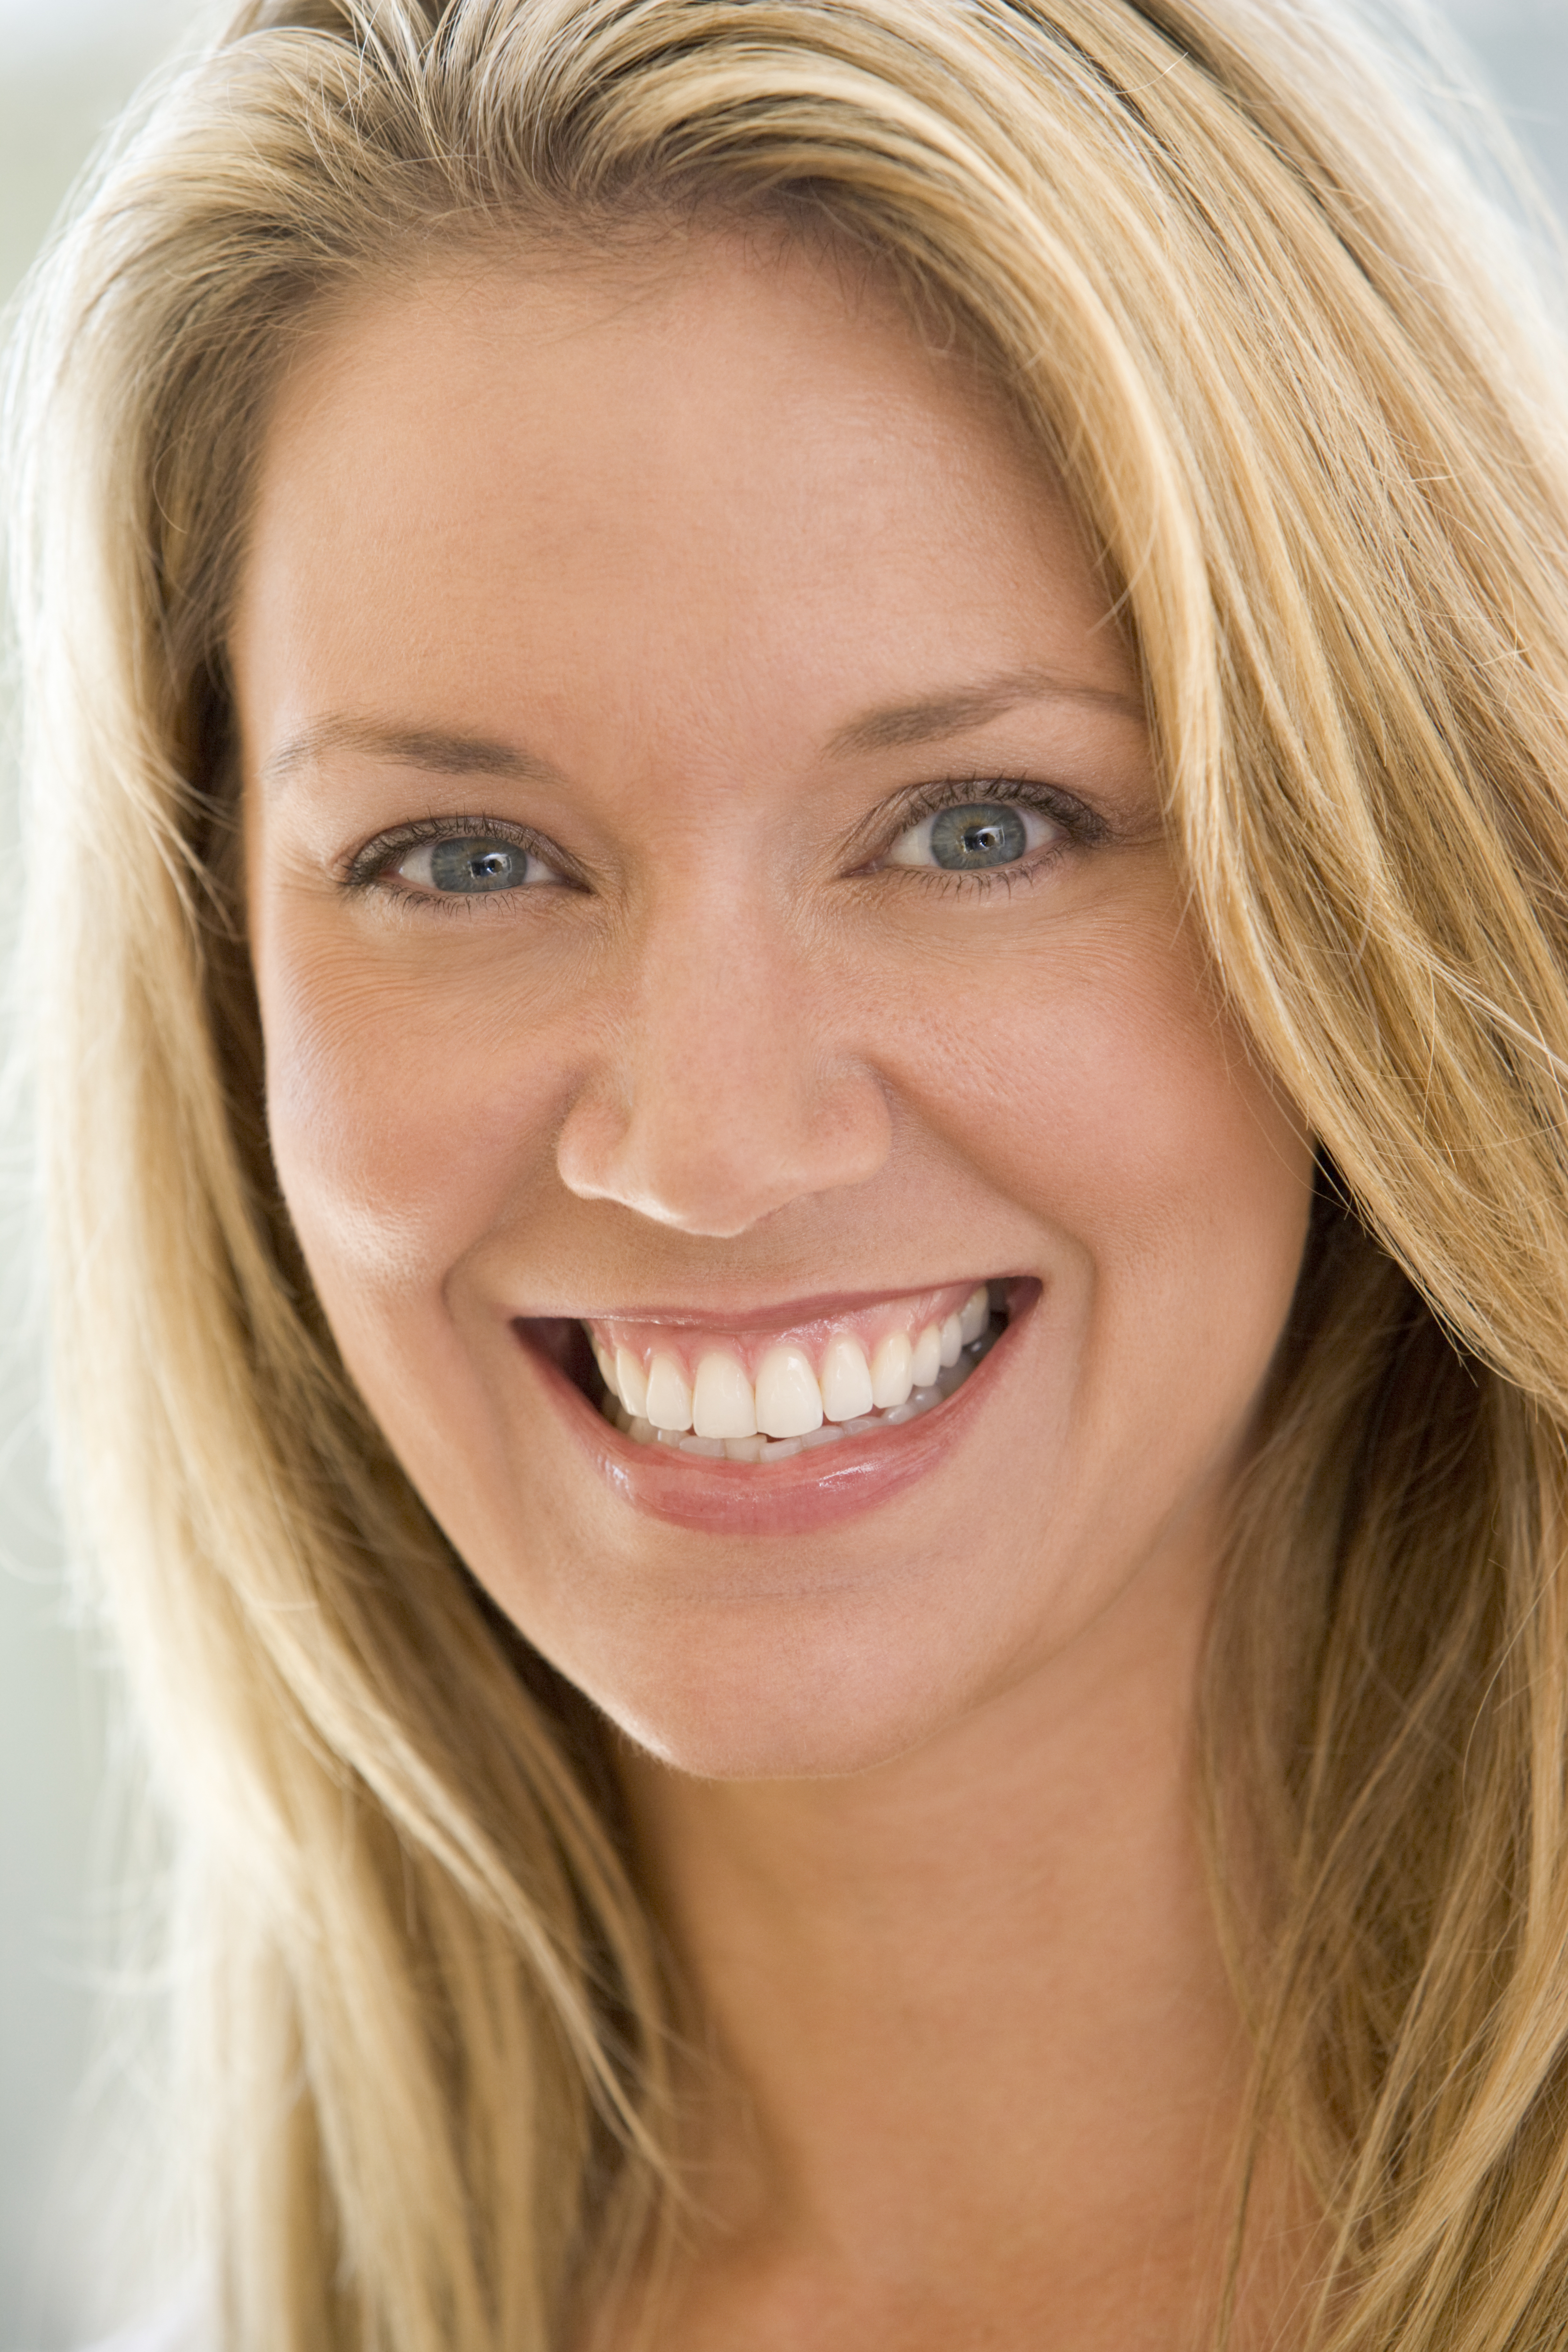 Cosmetic Gingival